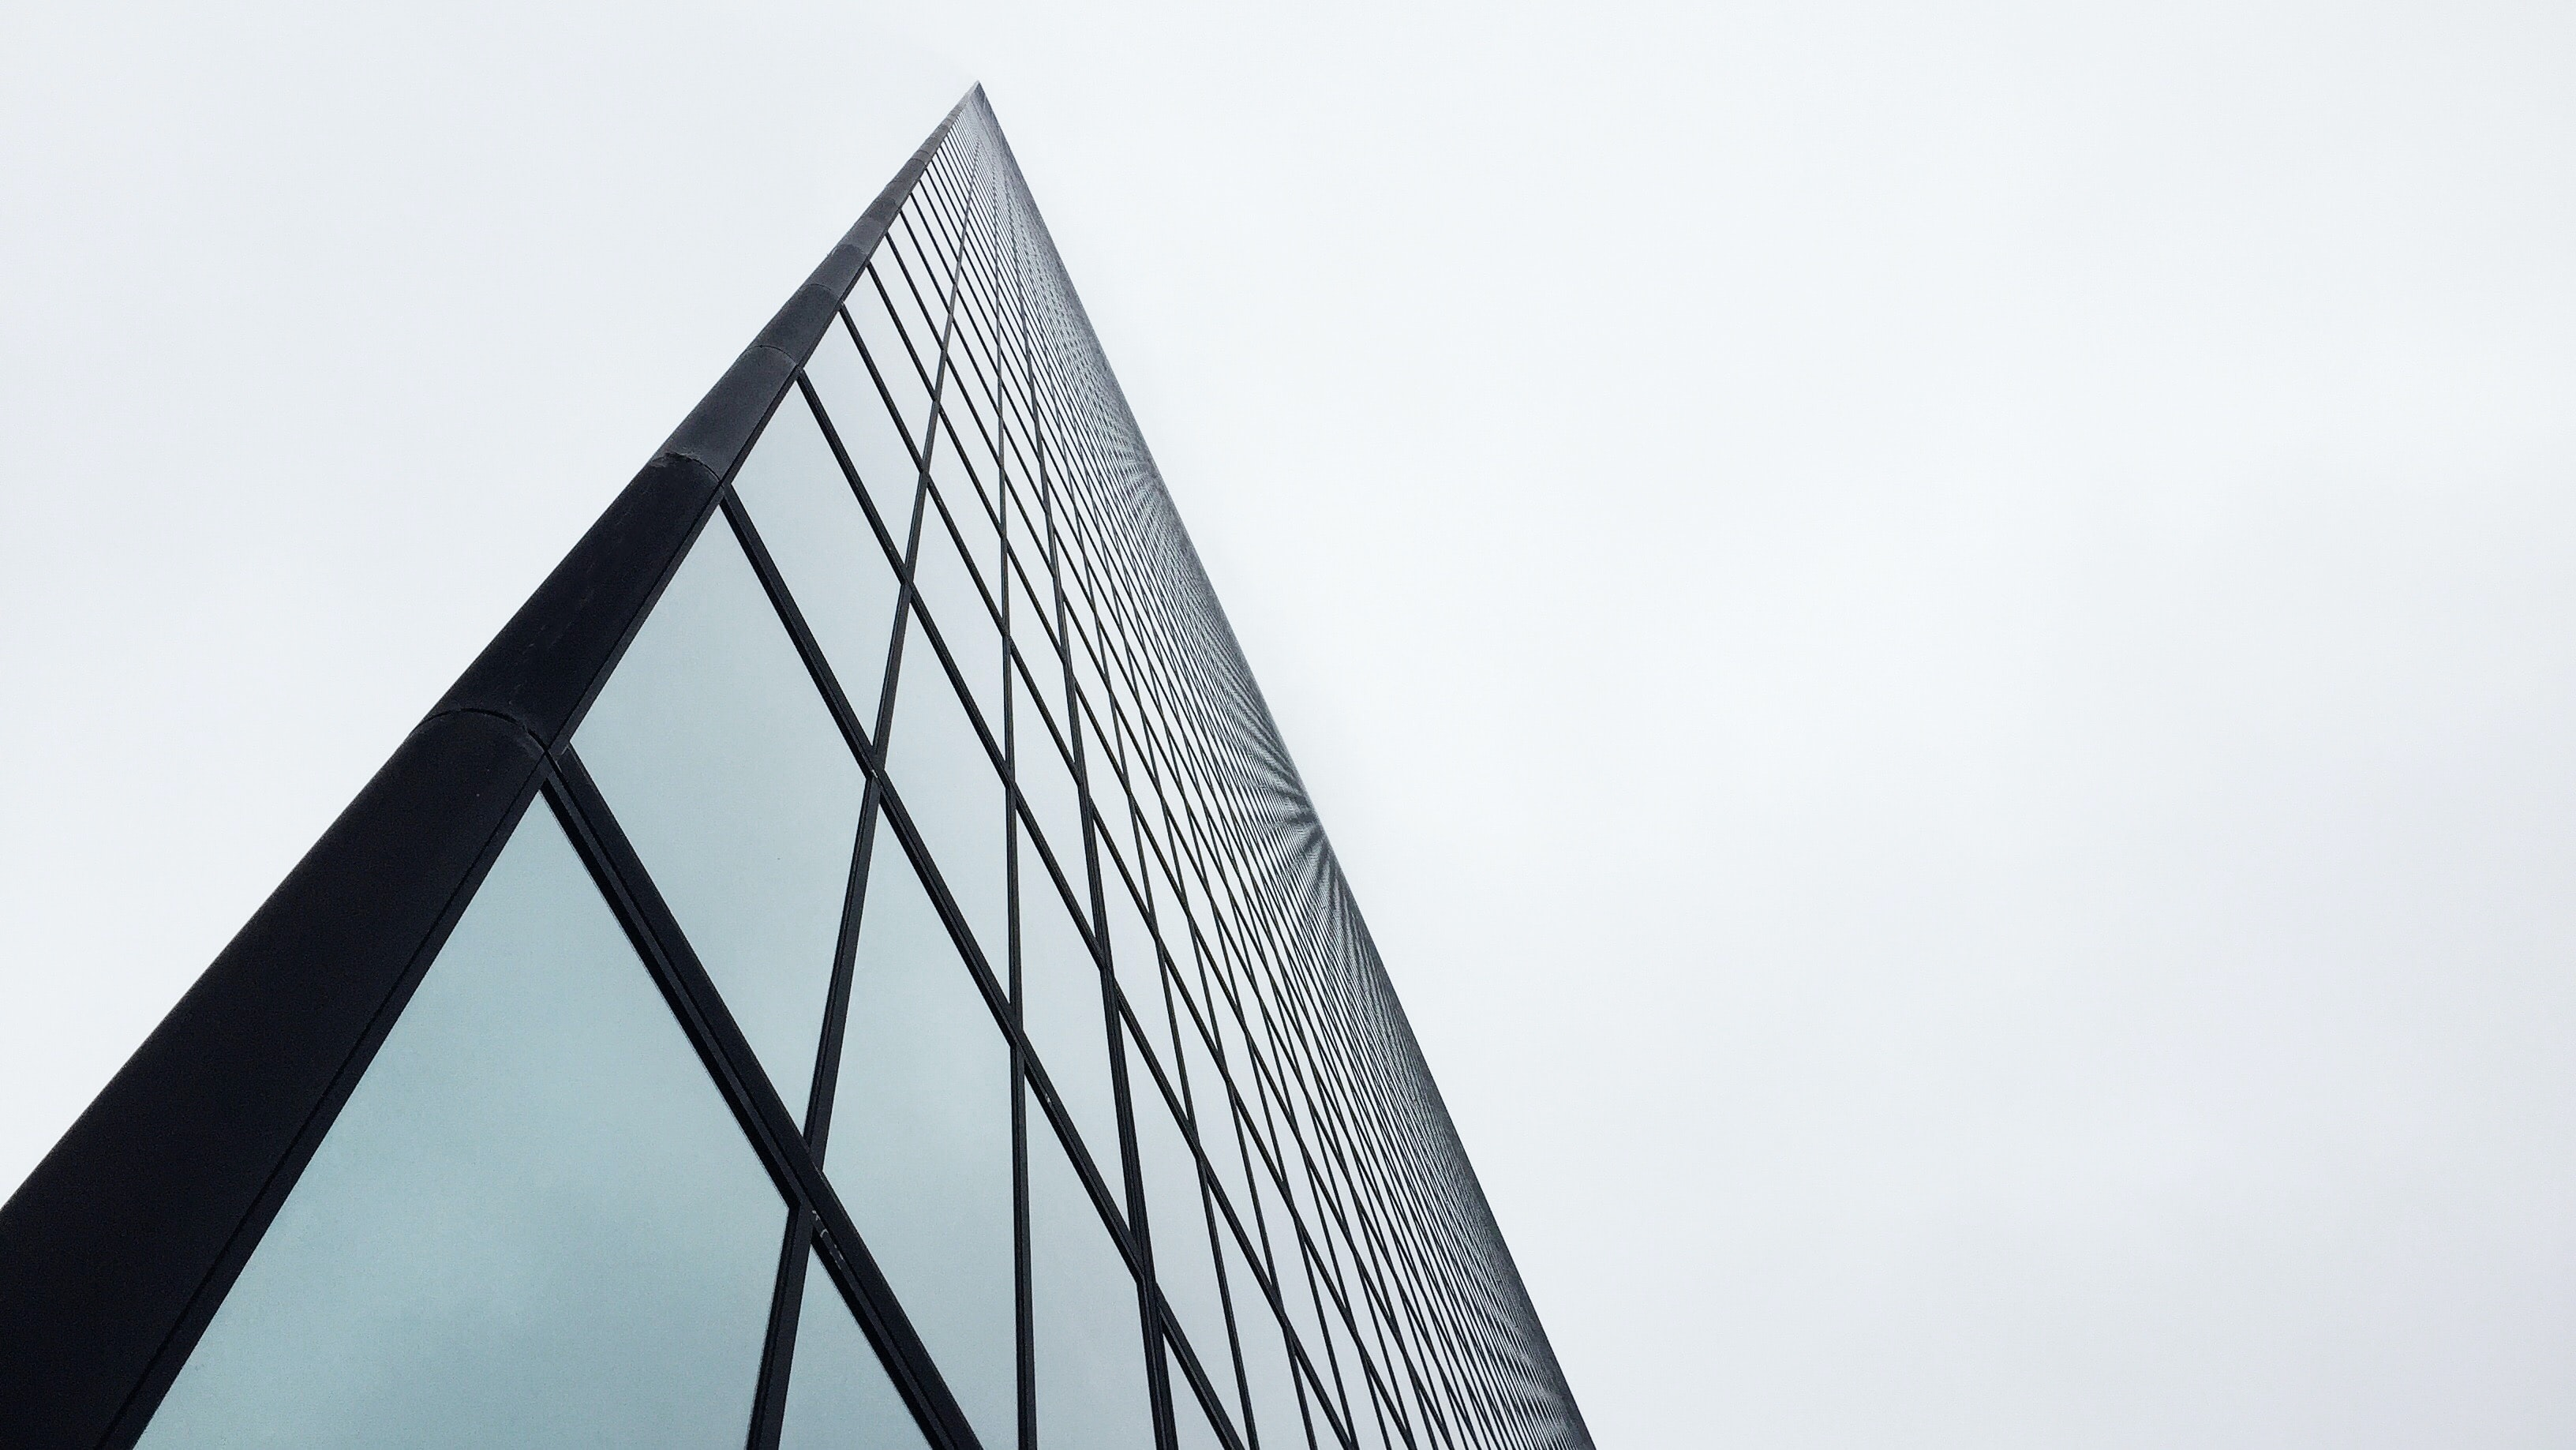 low-angle photography of glass building during daytime